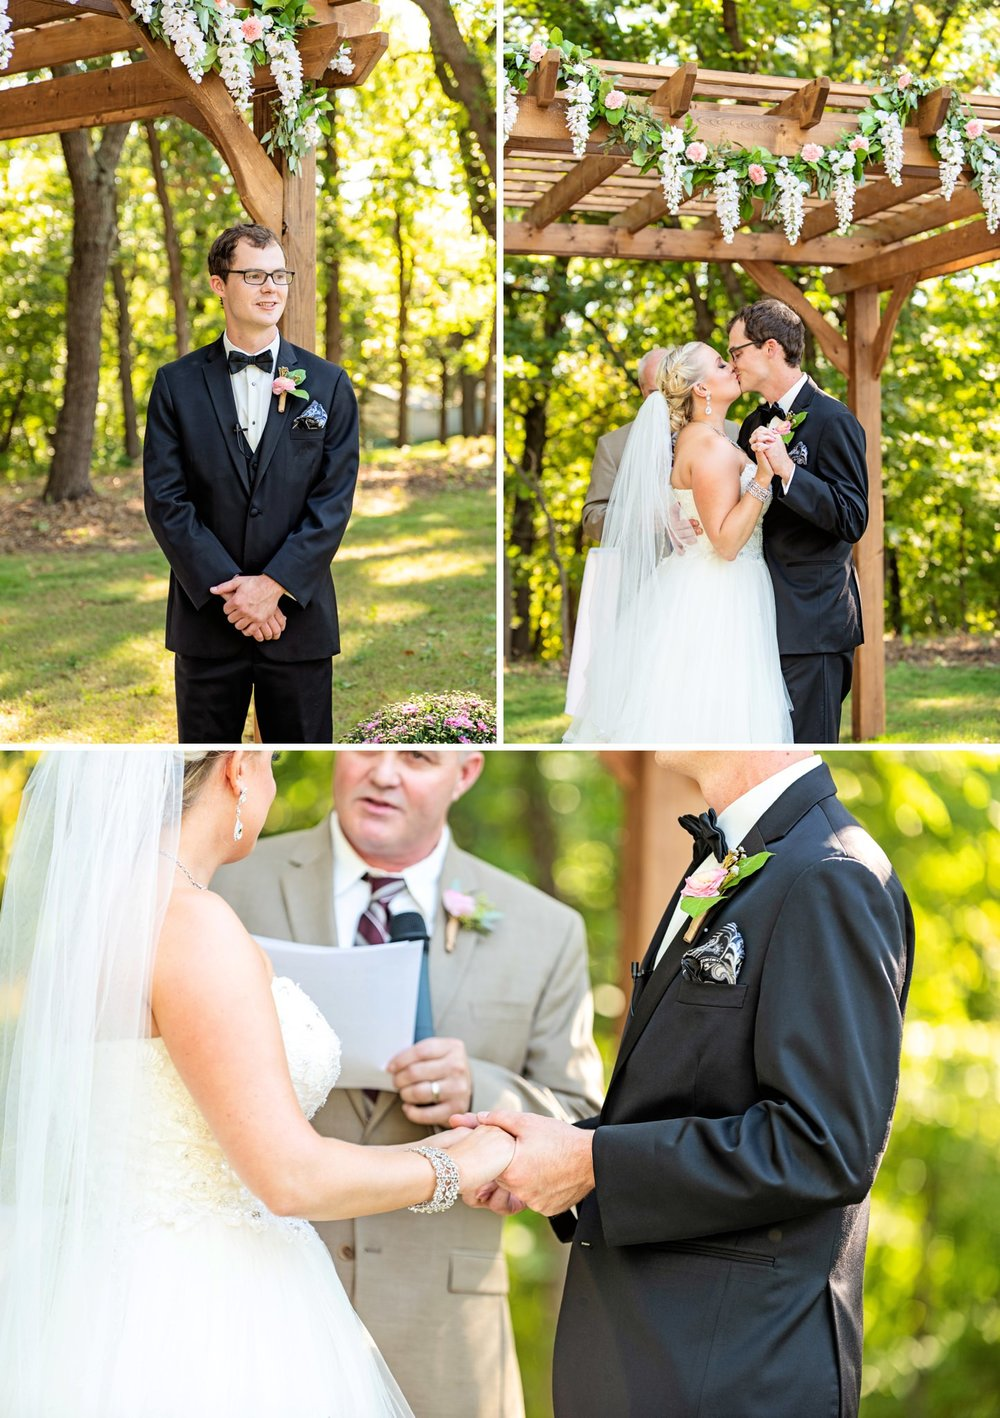 Brittany-Jay-Wedding-091518-Rotella-Photography-12_BLOG.jpg